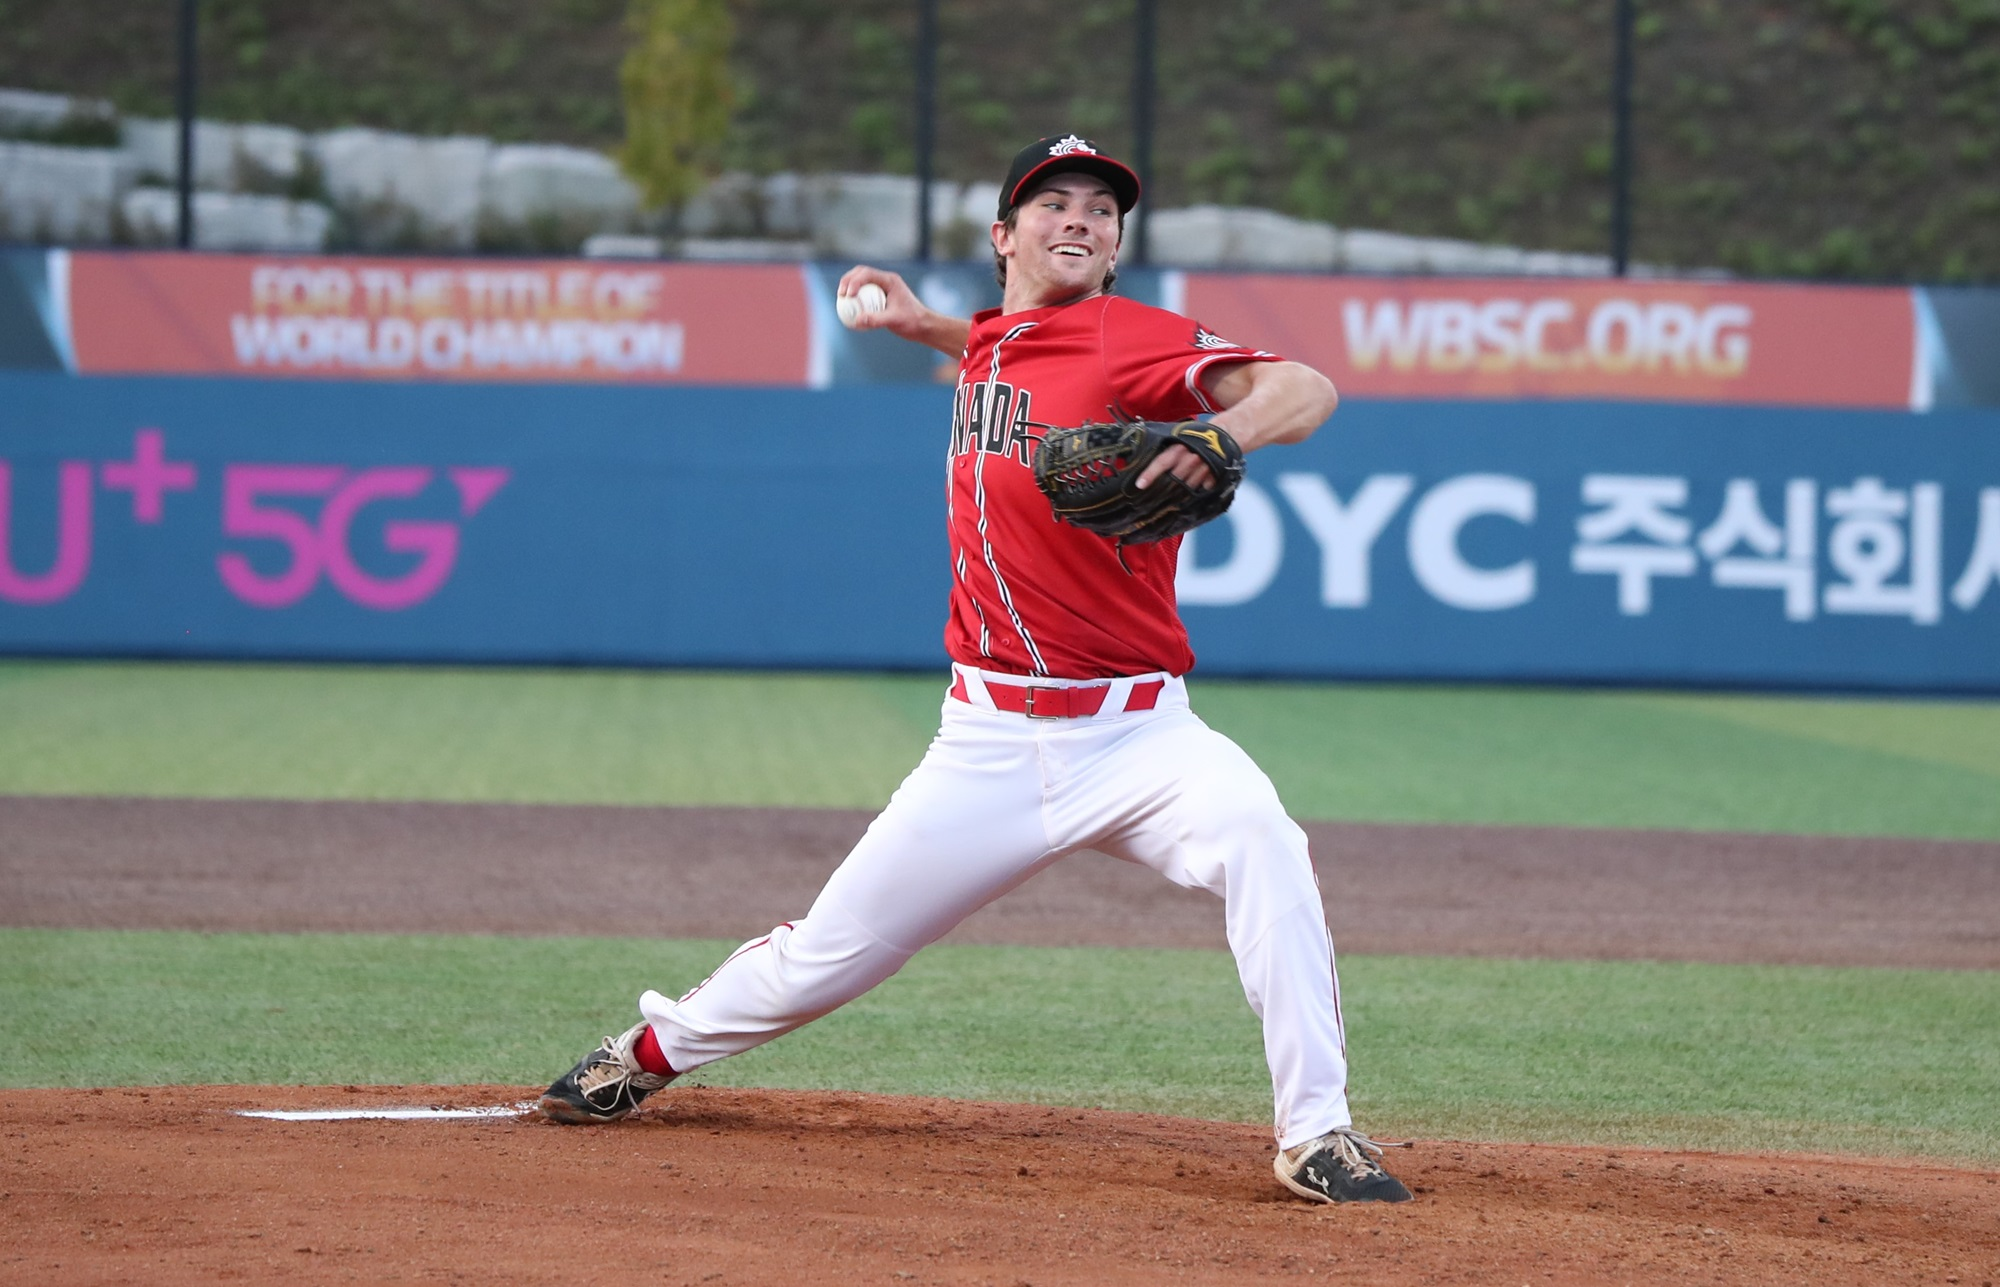 Chinese Taipei scored first against Canada's starter Adam Maier